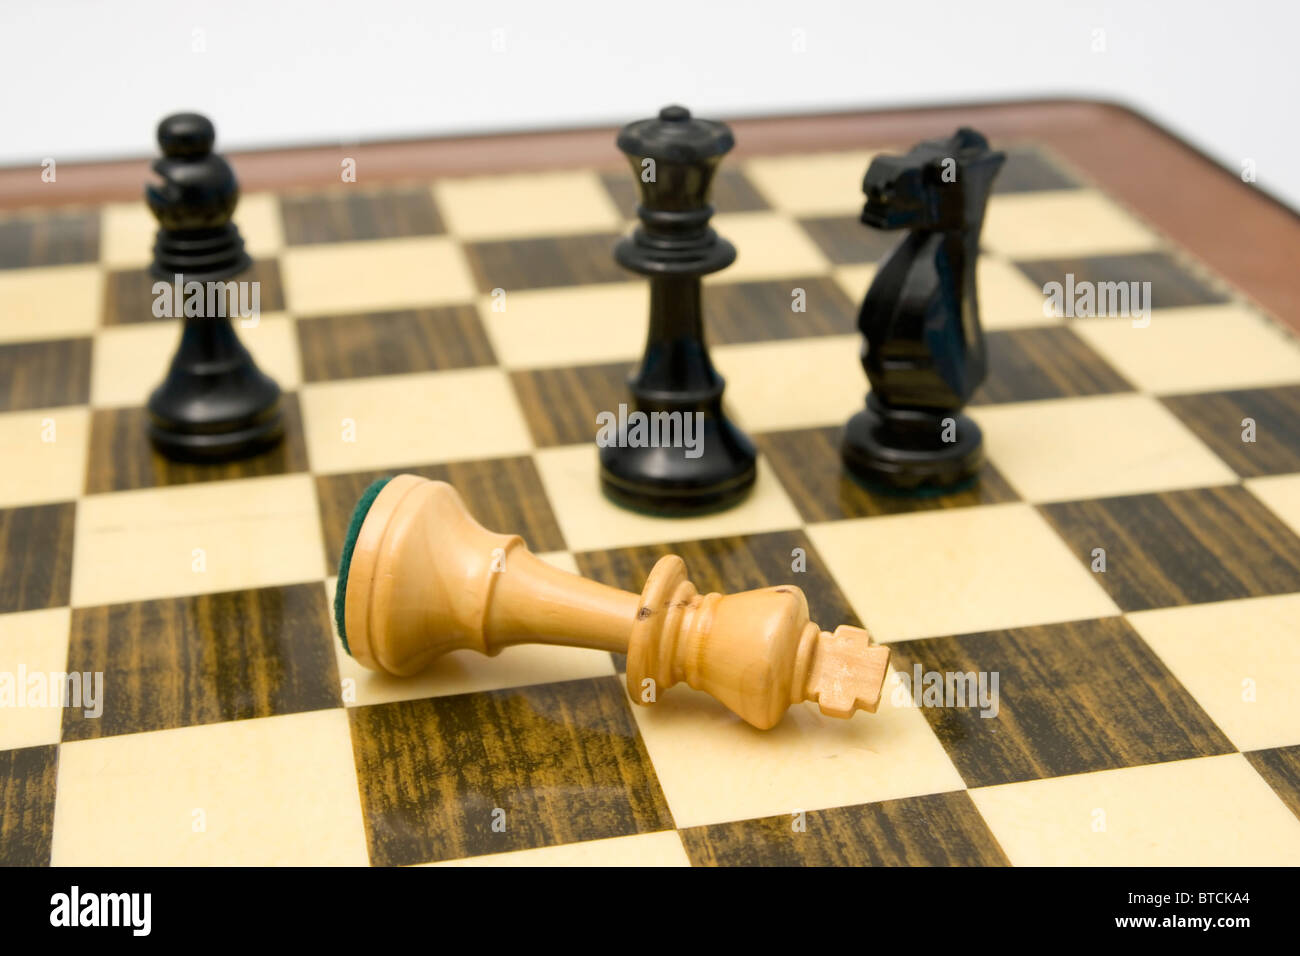 Check Mate showing concept for strategy success and battle in business - Stock Image